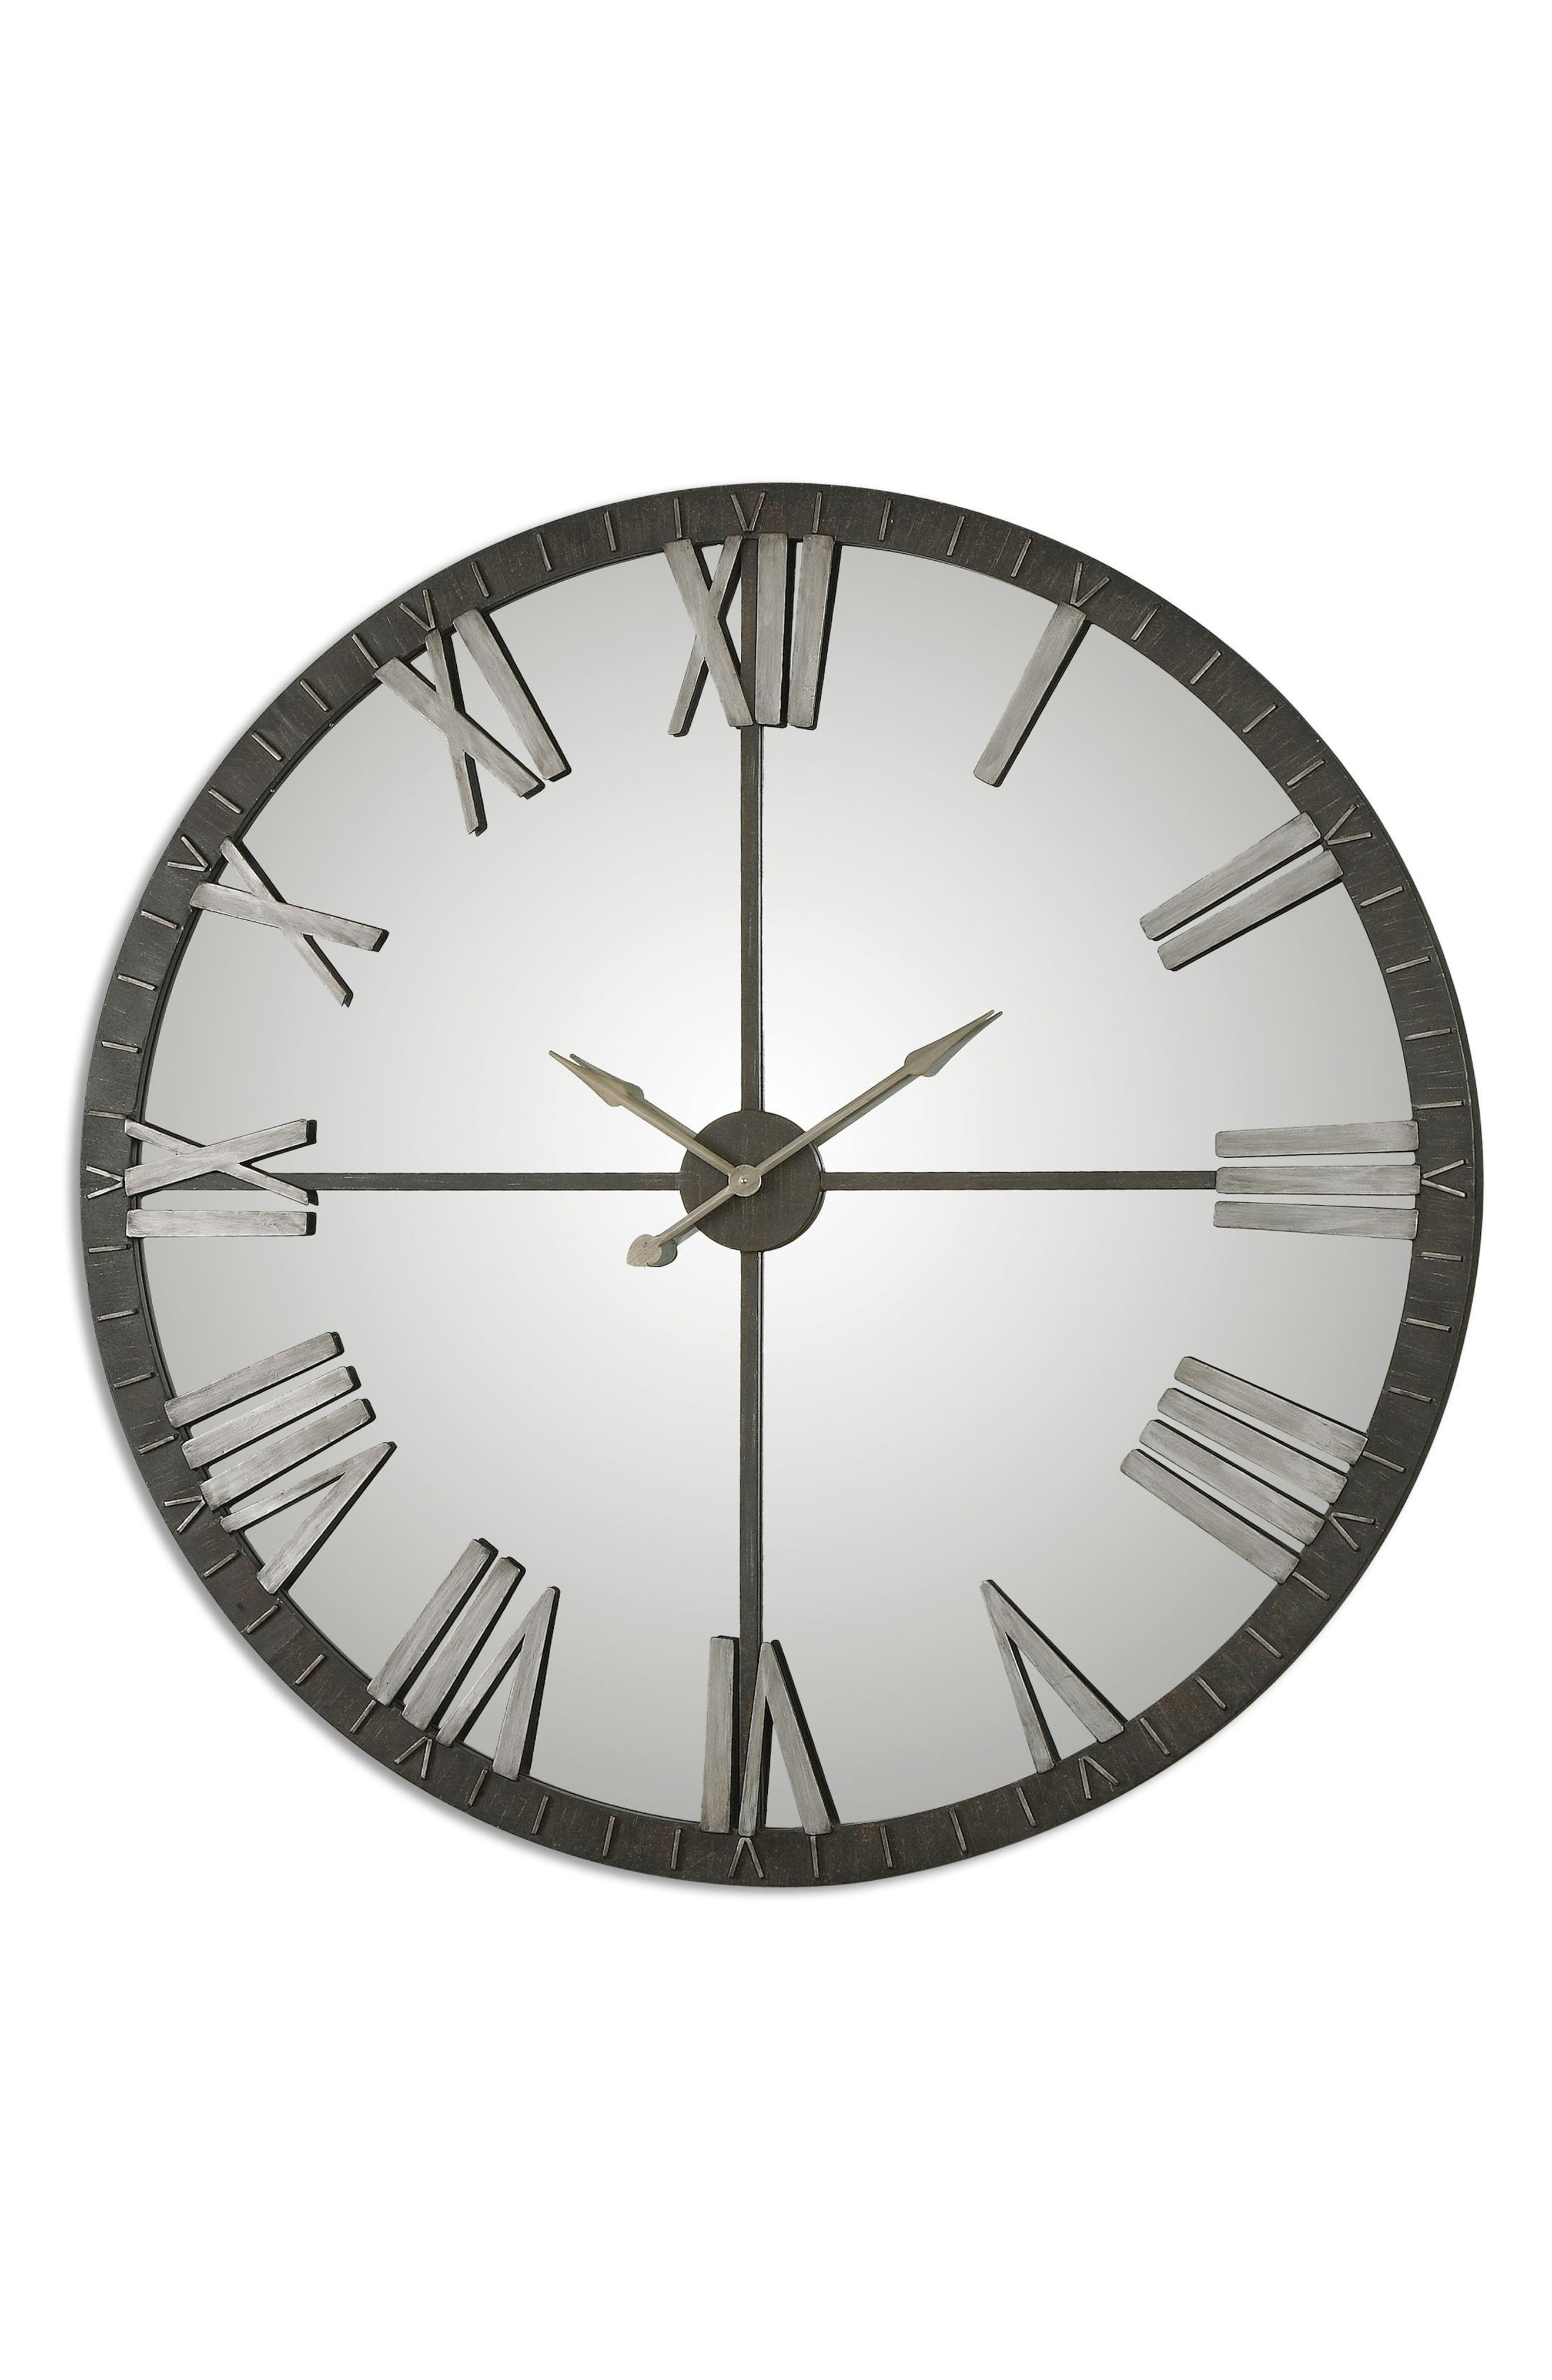 Alternate Image 1 Selected - Uttermost Amelie Wall Clock